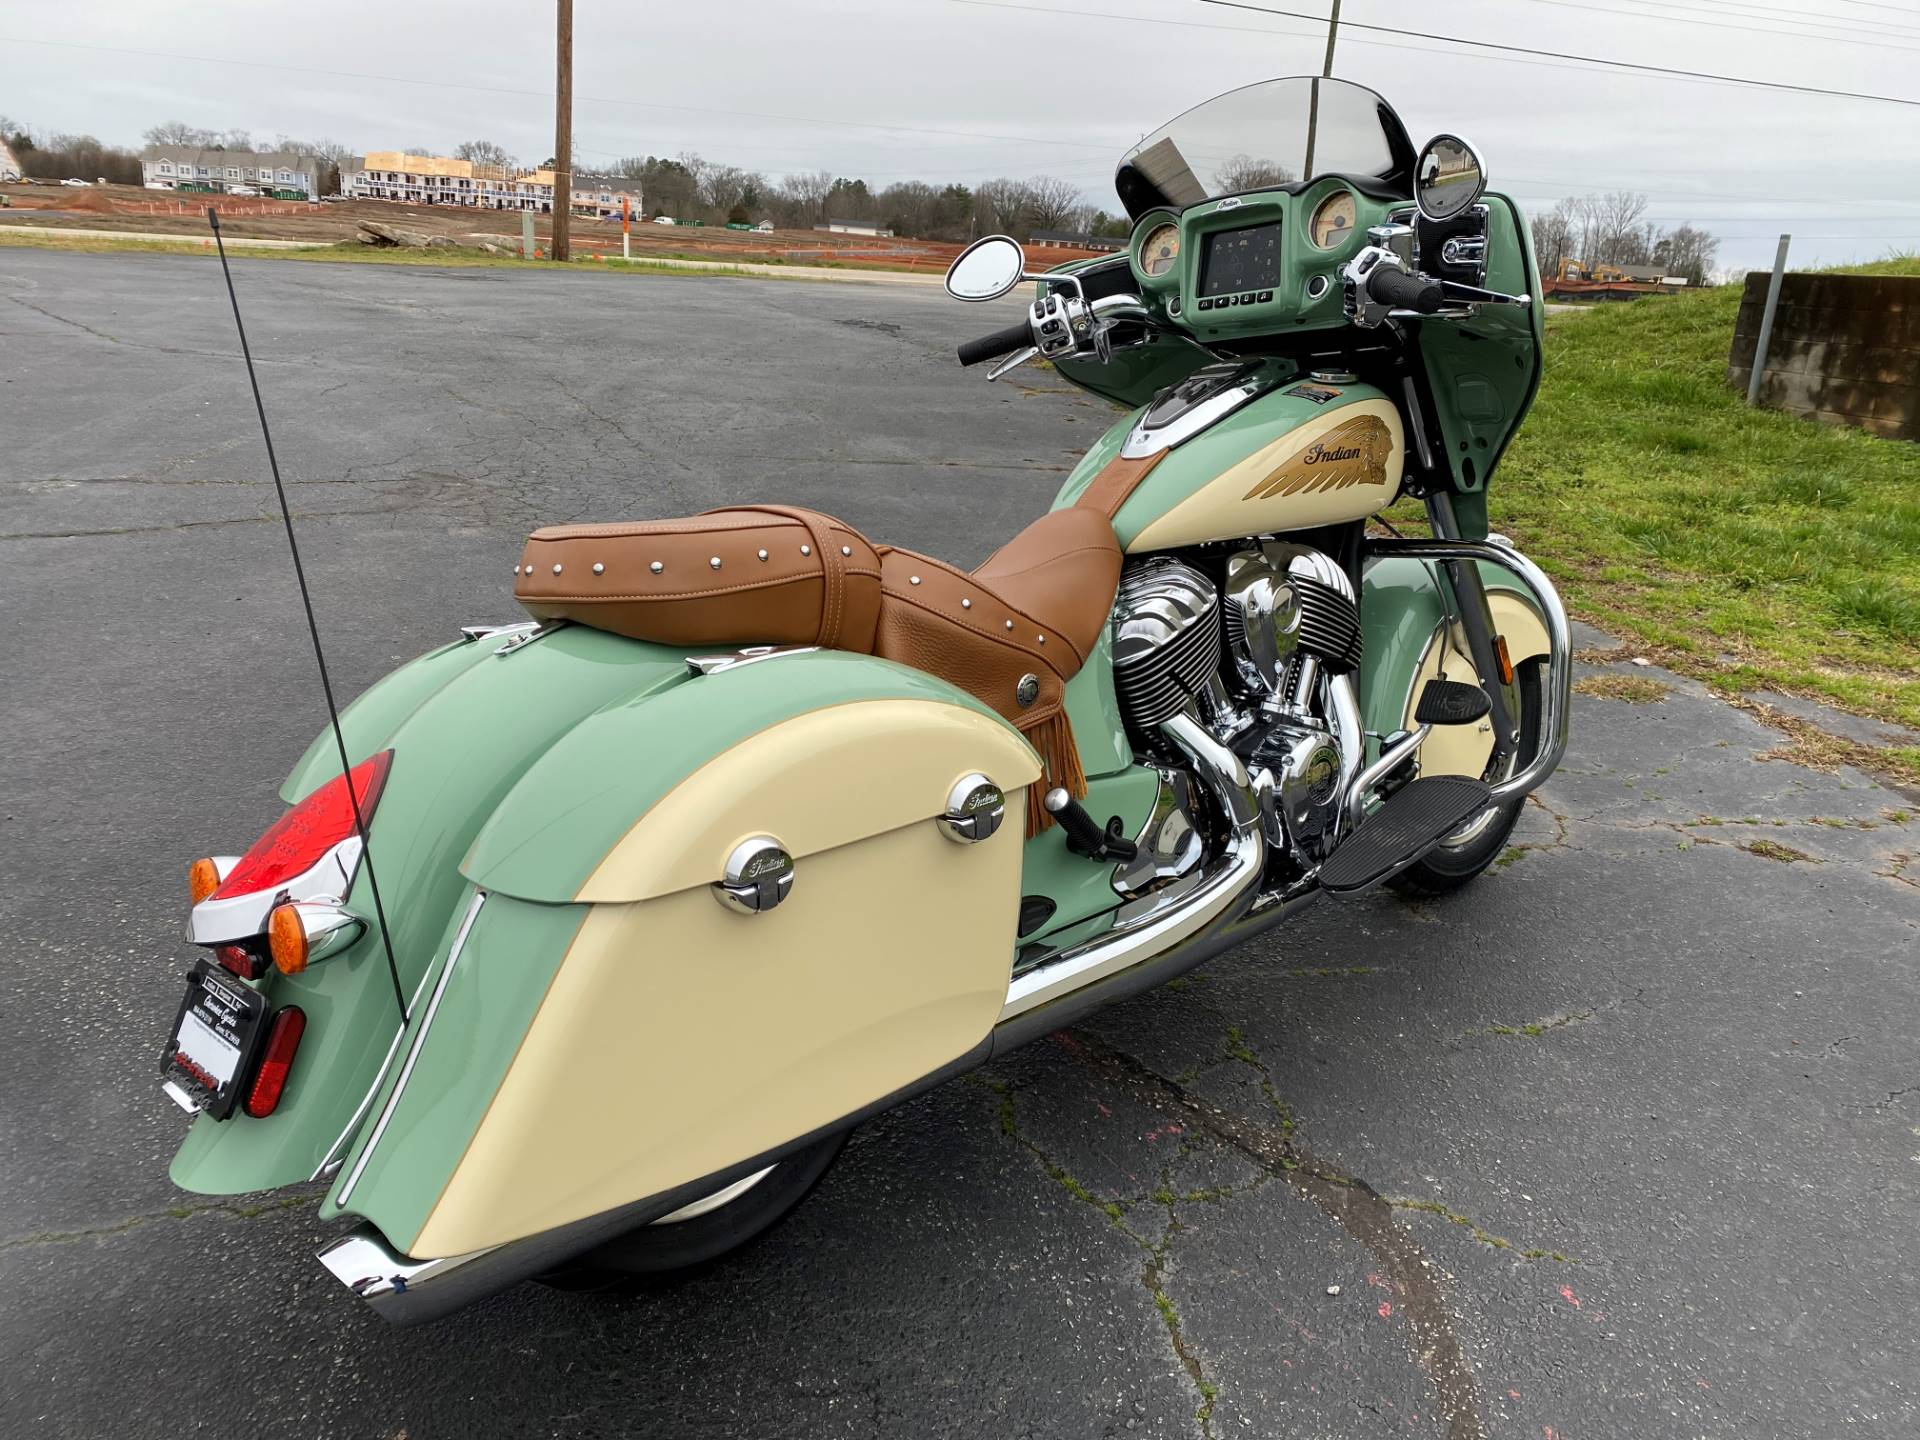 2020 Indian Chieftain Classic Icon Series - Photo 14